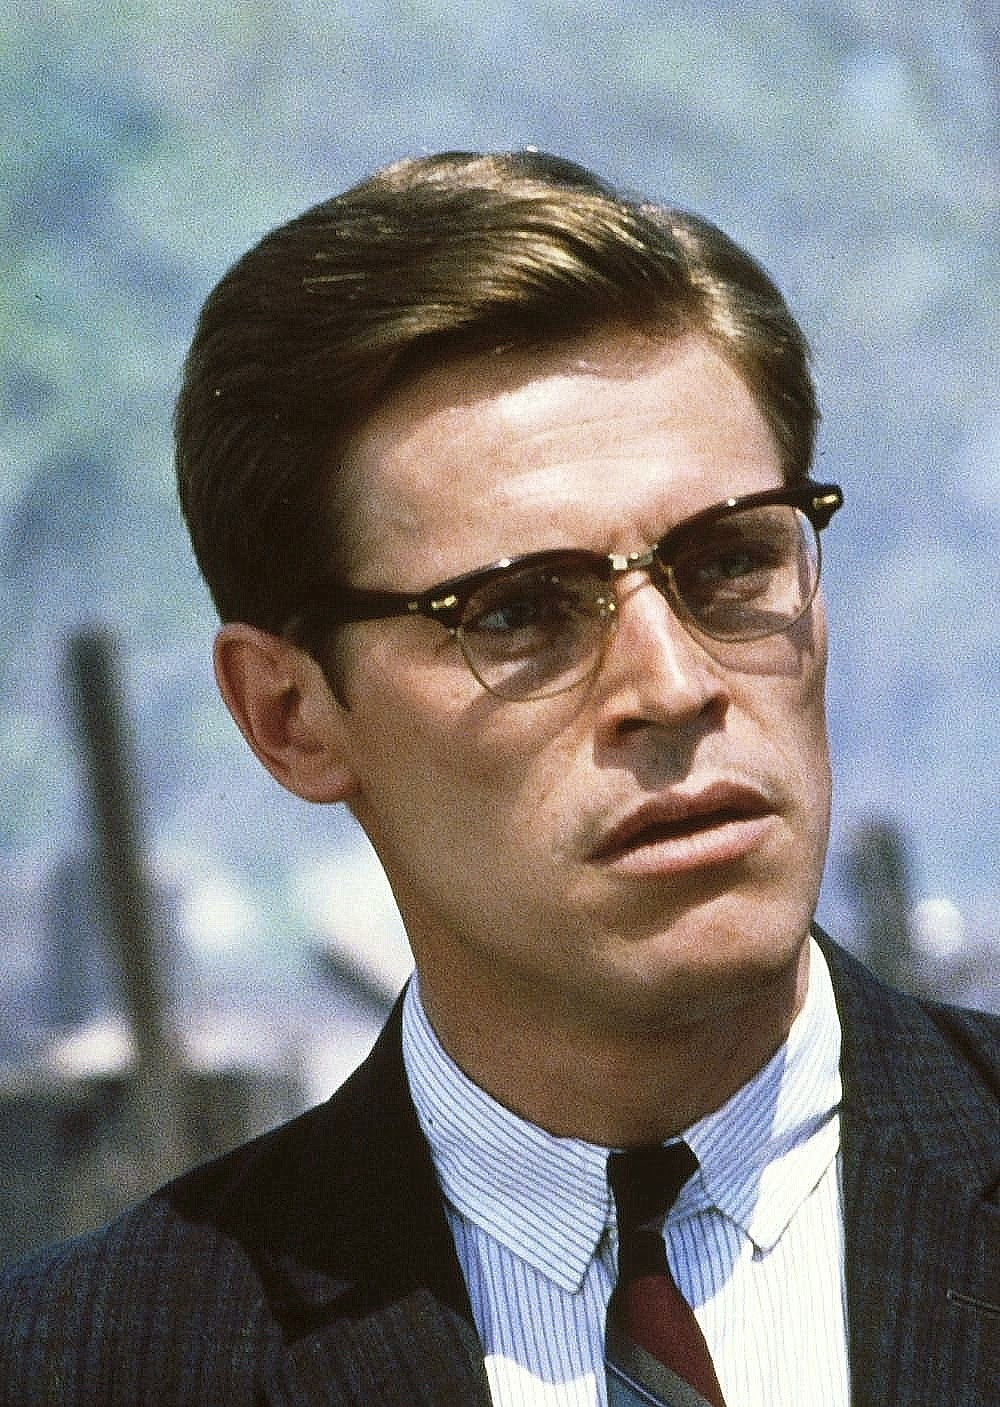 Bespectacled Birthdays: Willem Dafoe (from Mississippi ...